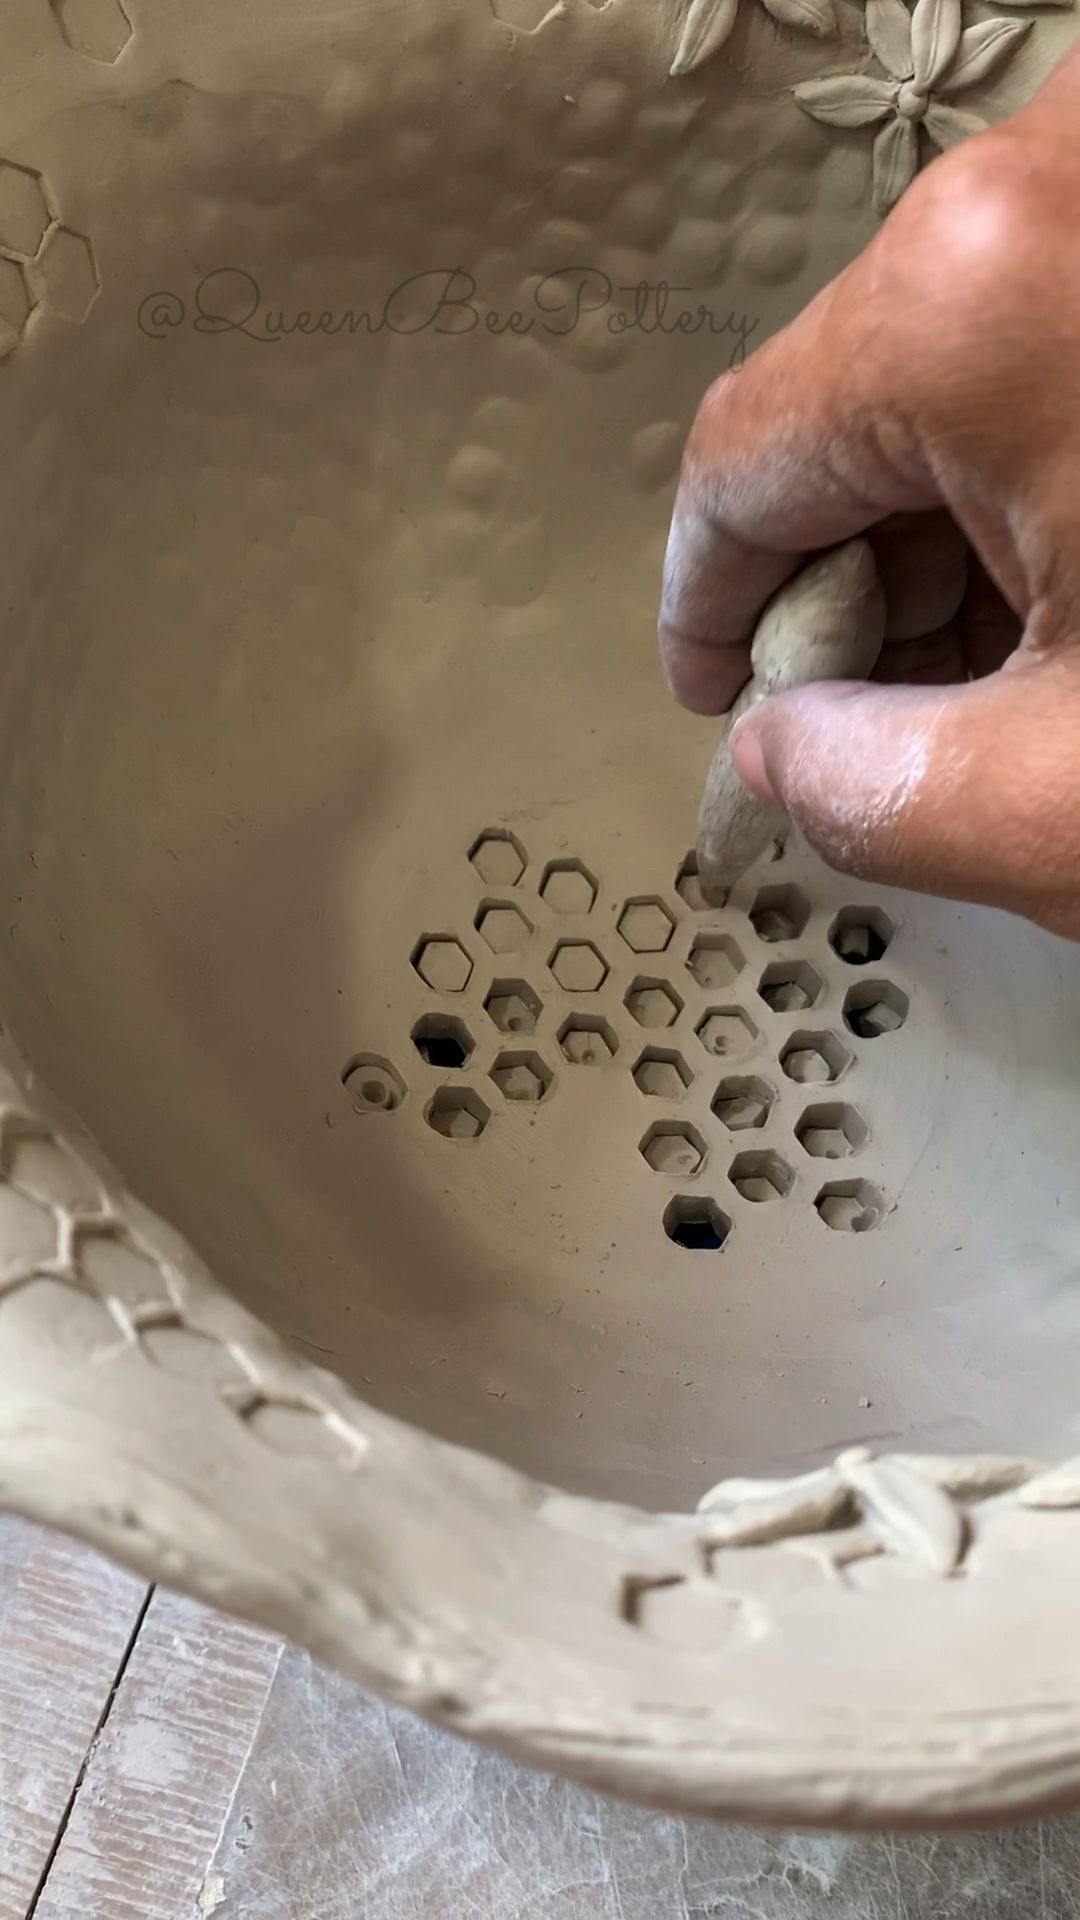 Porcelain bee inspired pottery colander being created.